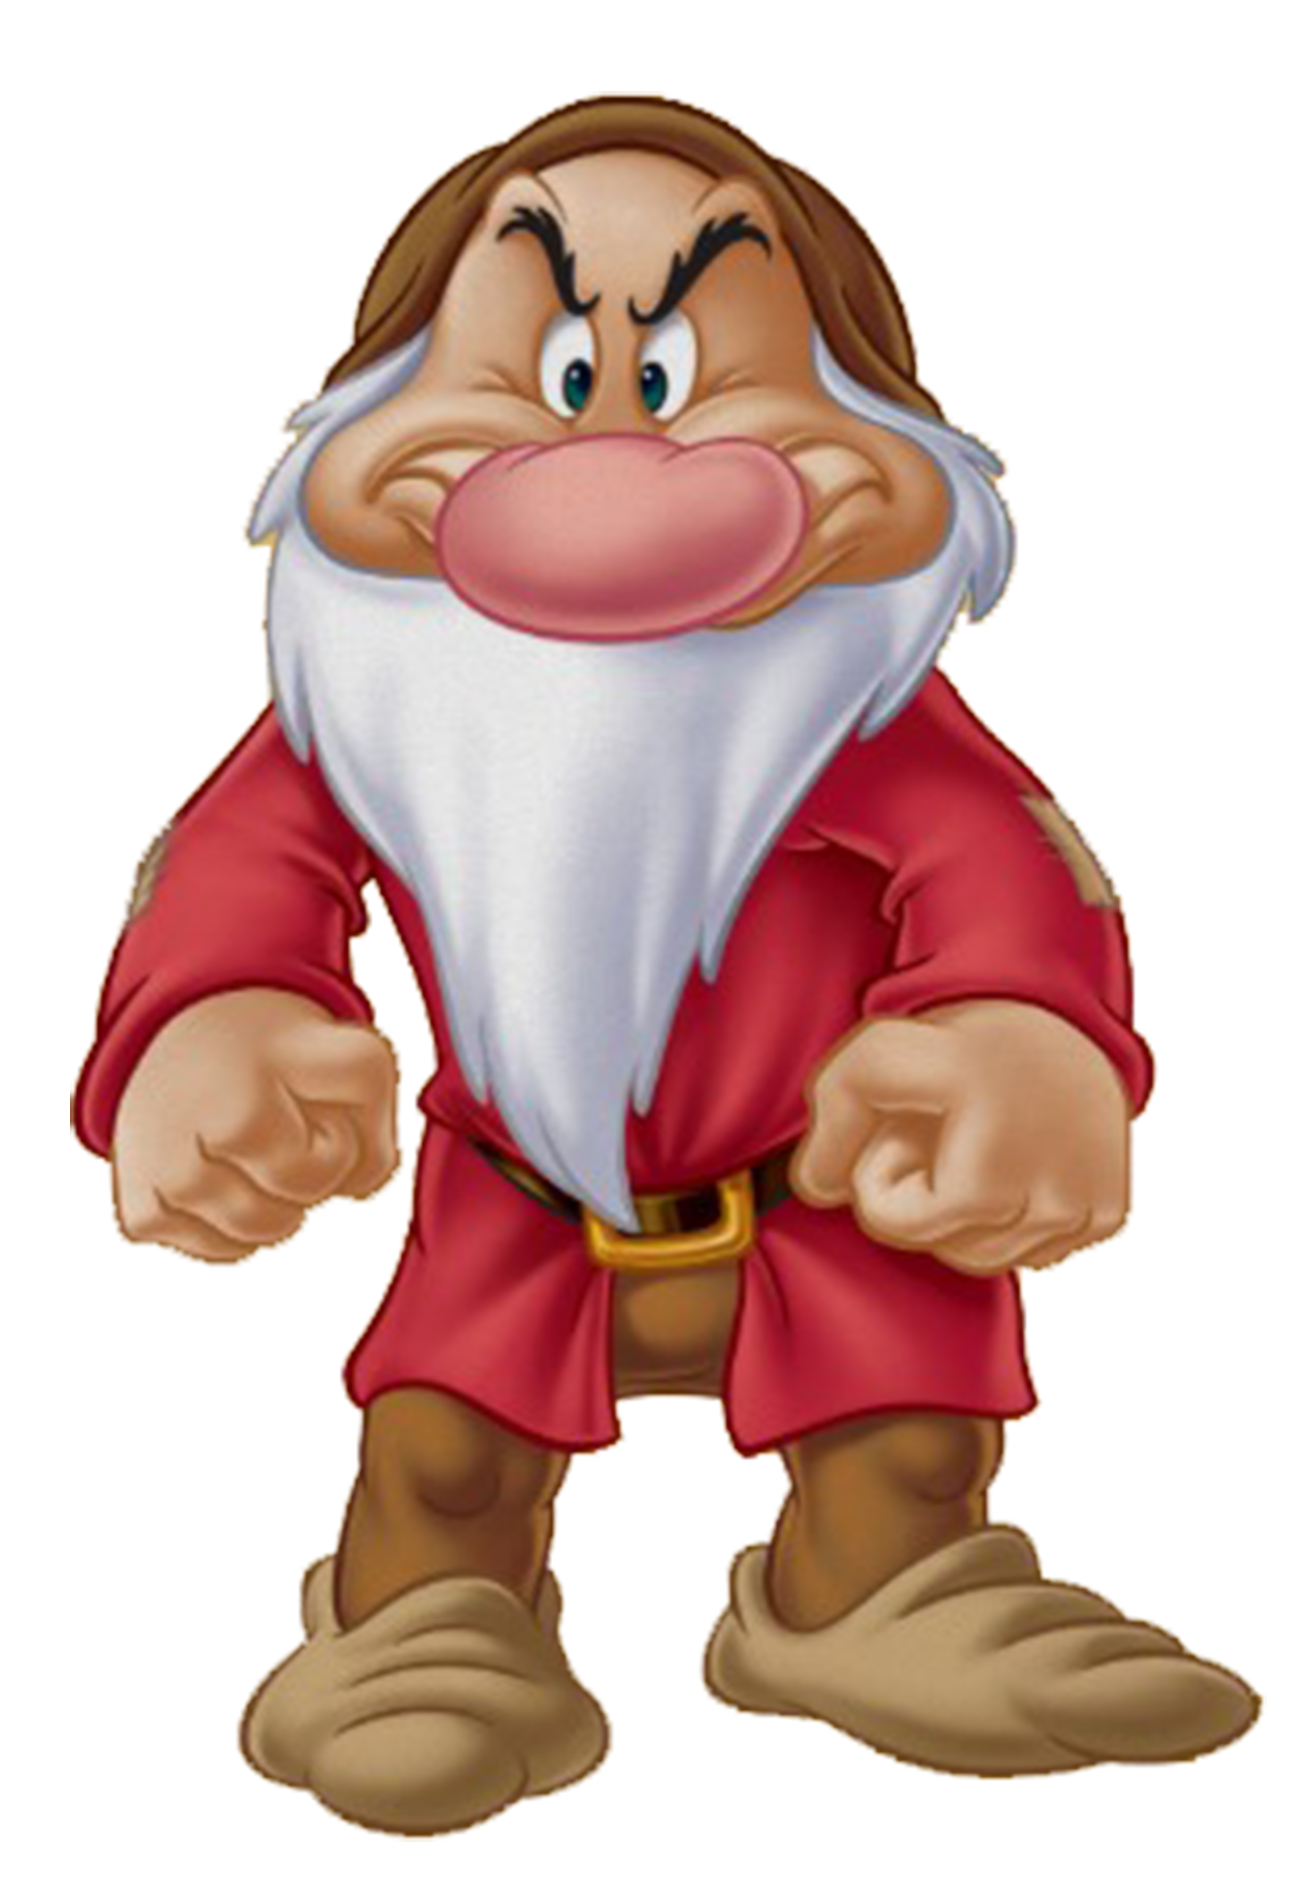 Grumpy from 7 dwarfs with arms crossed clipart banner freeuse library Image result for disney grumpy face | Through eyes of a Gemini ... banner freeuse library